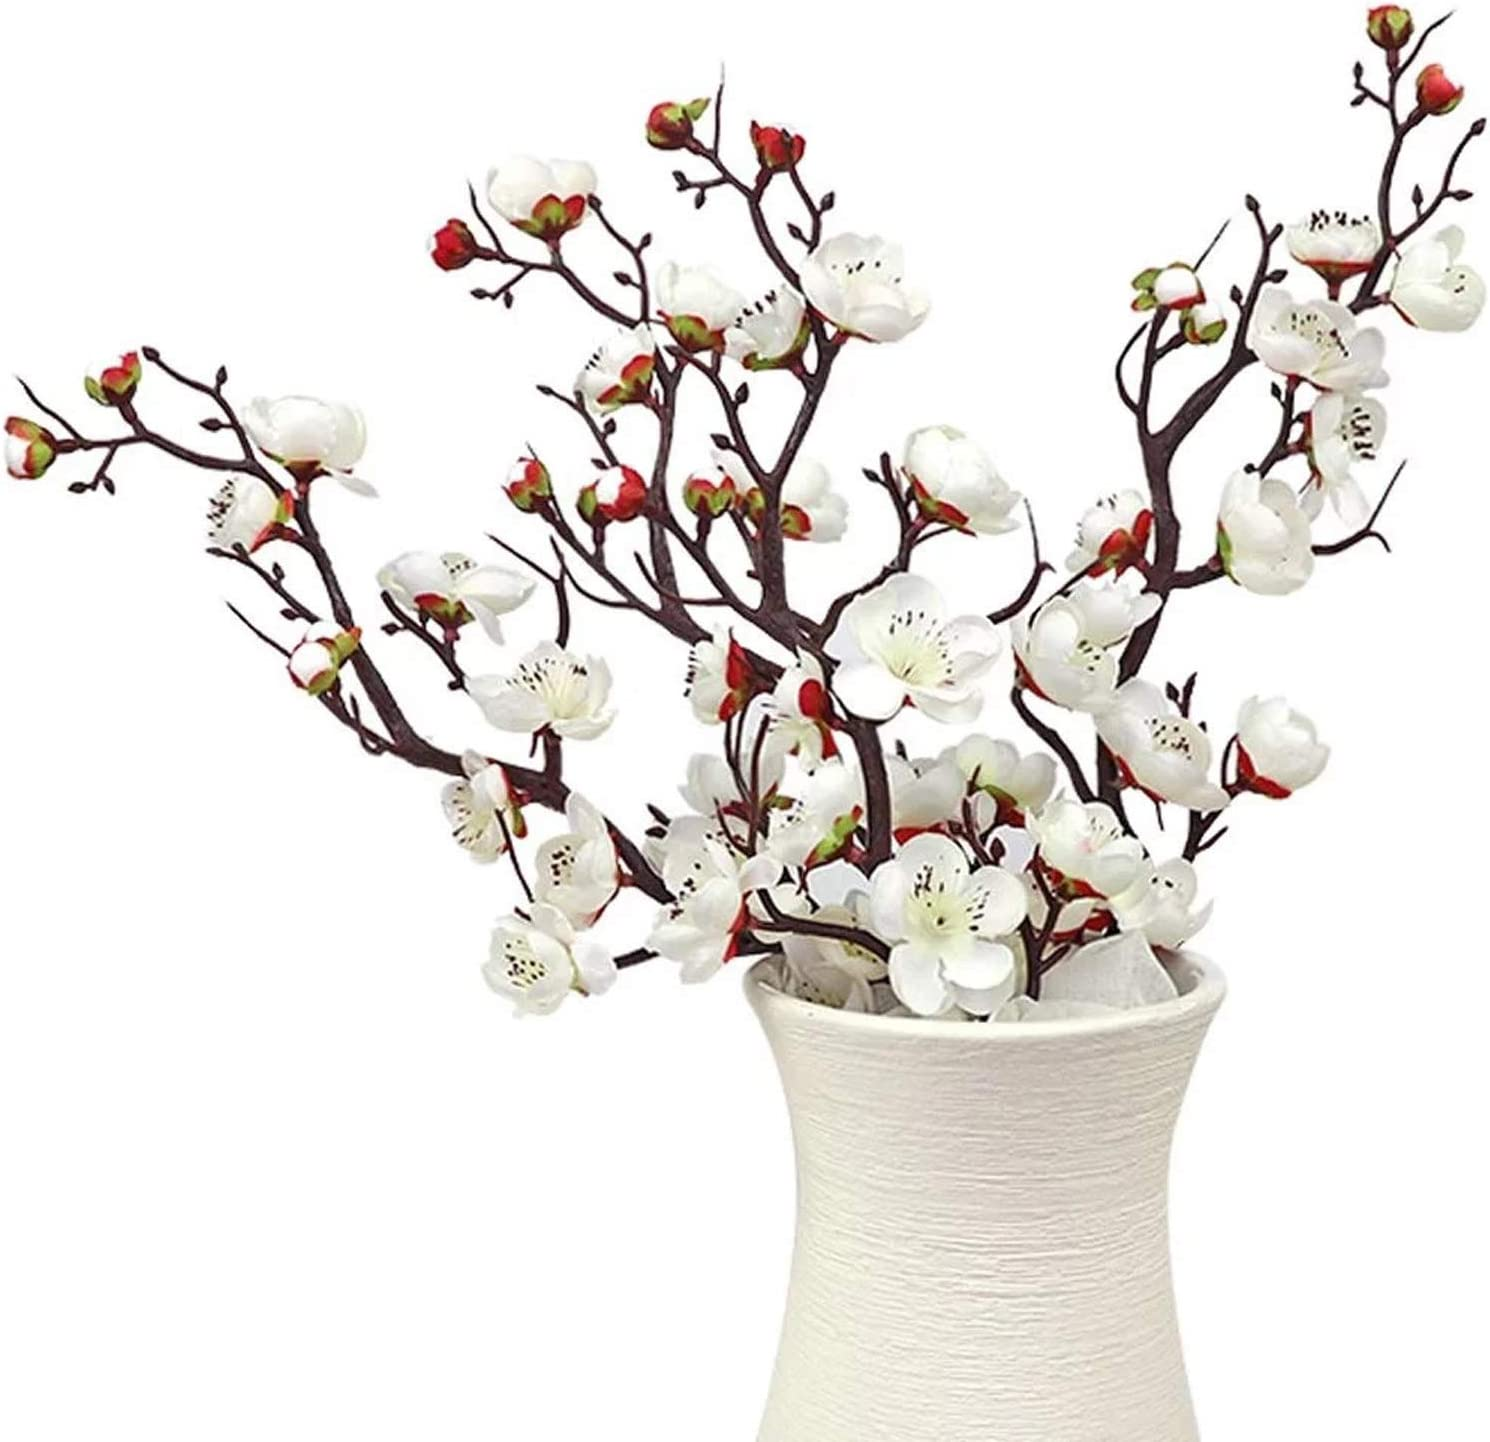 6 Pieces of Artificial Plum Blossom Artificial Flowers Artificial Flora Simulation Flowerfor Home Decorations Office Kitchen Weeding